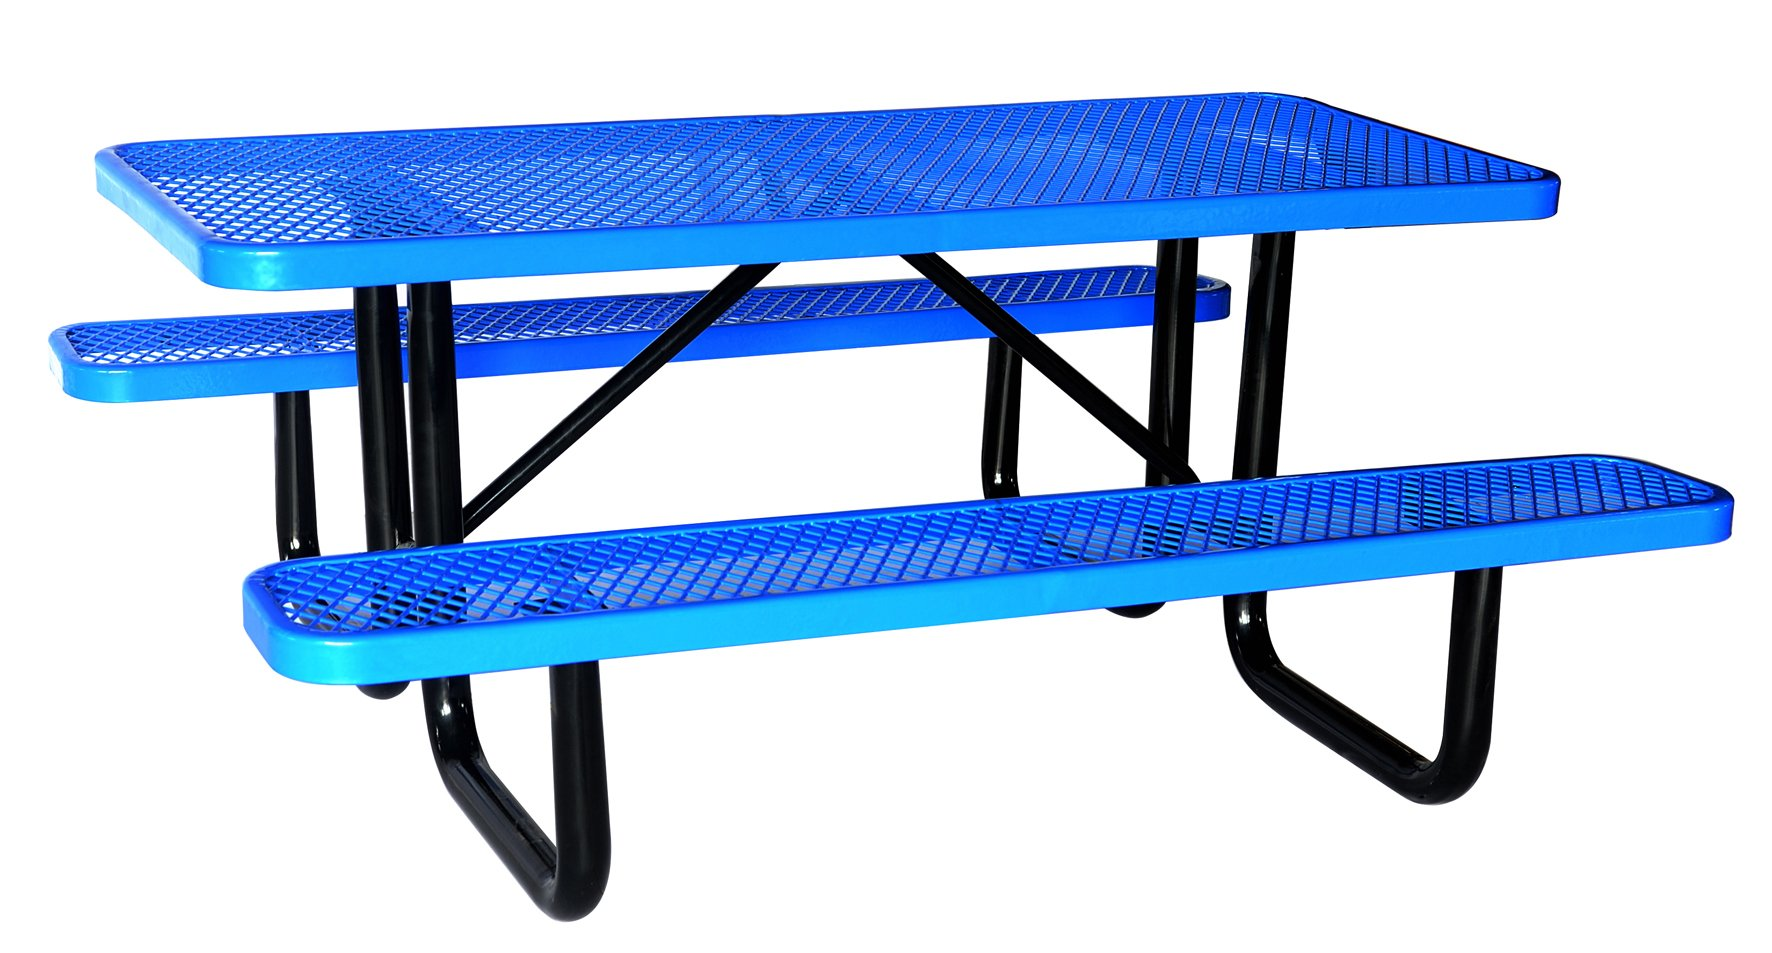 Lifeyard 72'' Expanded Metal Rectangular Picnic Table and Benches Steel Frame for Outdoor Furniture (Blue)!